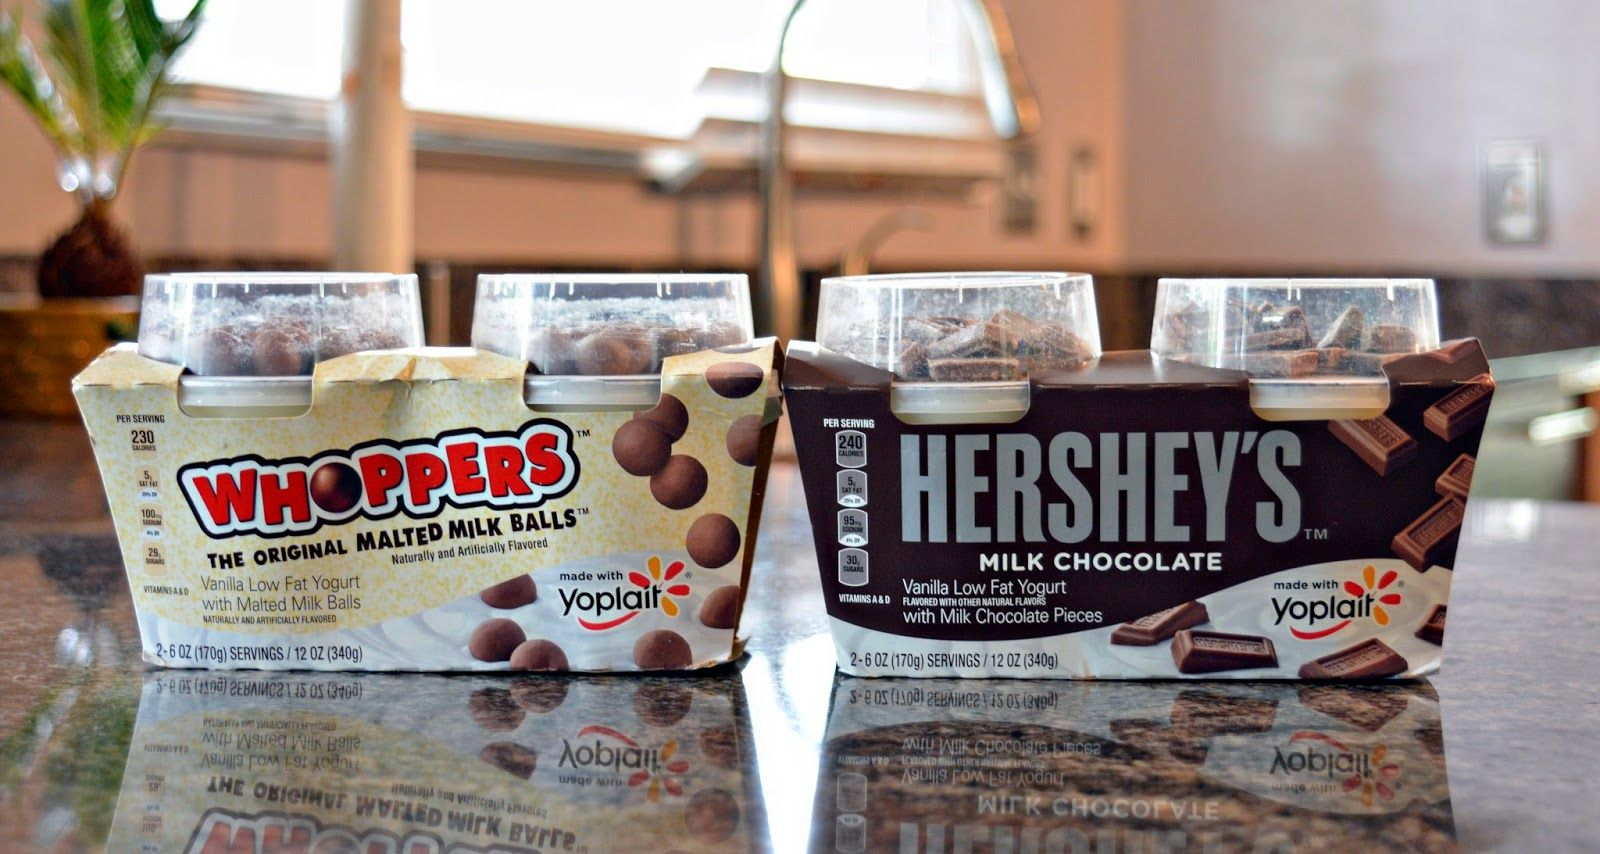 Theresa's Mixed Nuts: Sweet After School Snacking With New HERSHEY'S Yogurt Mix-ins #HERSHEYS #PlatefullCoOp #paid